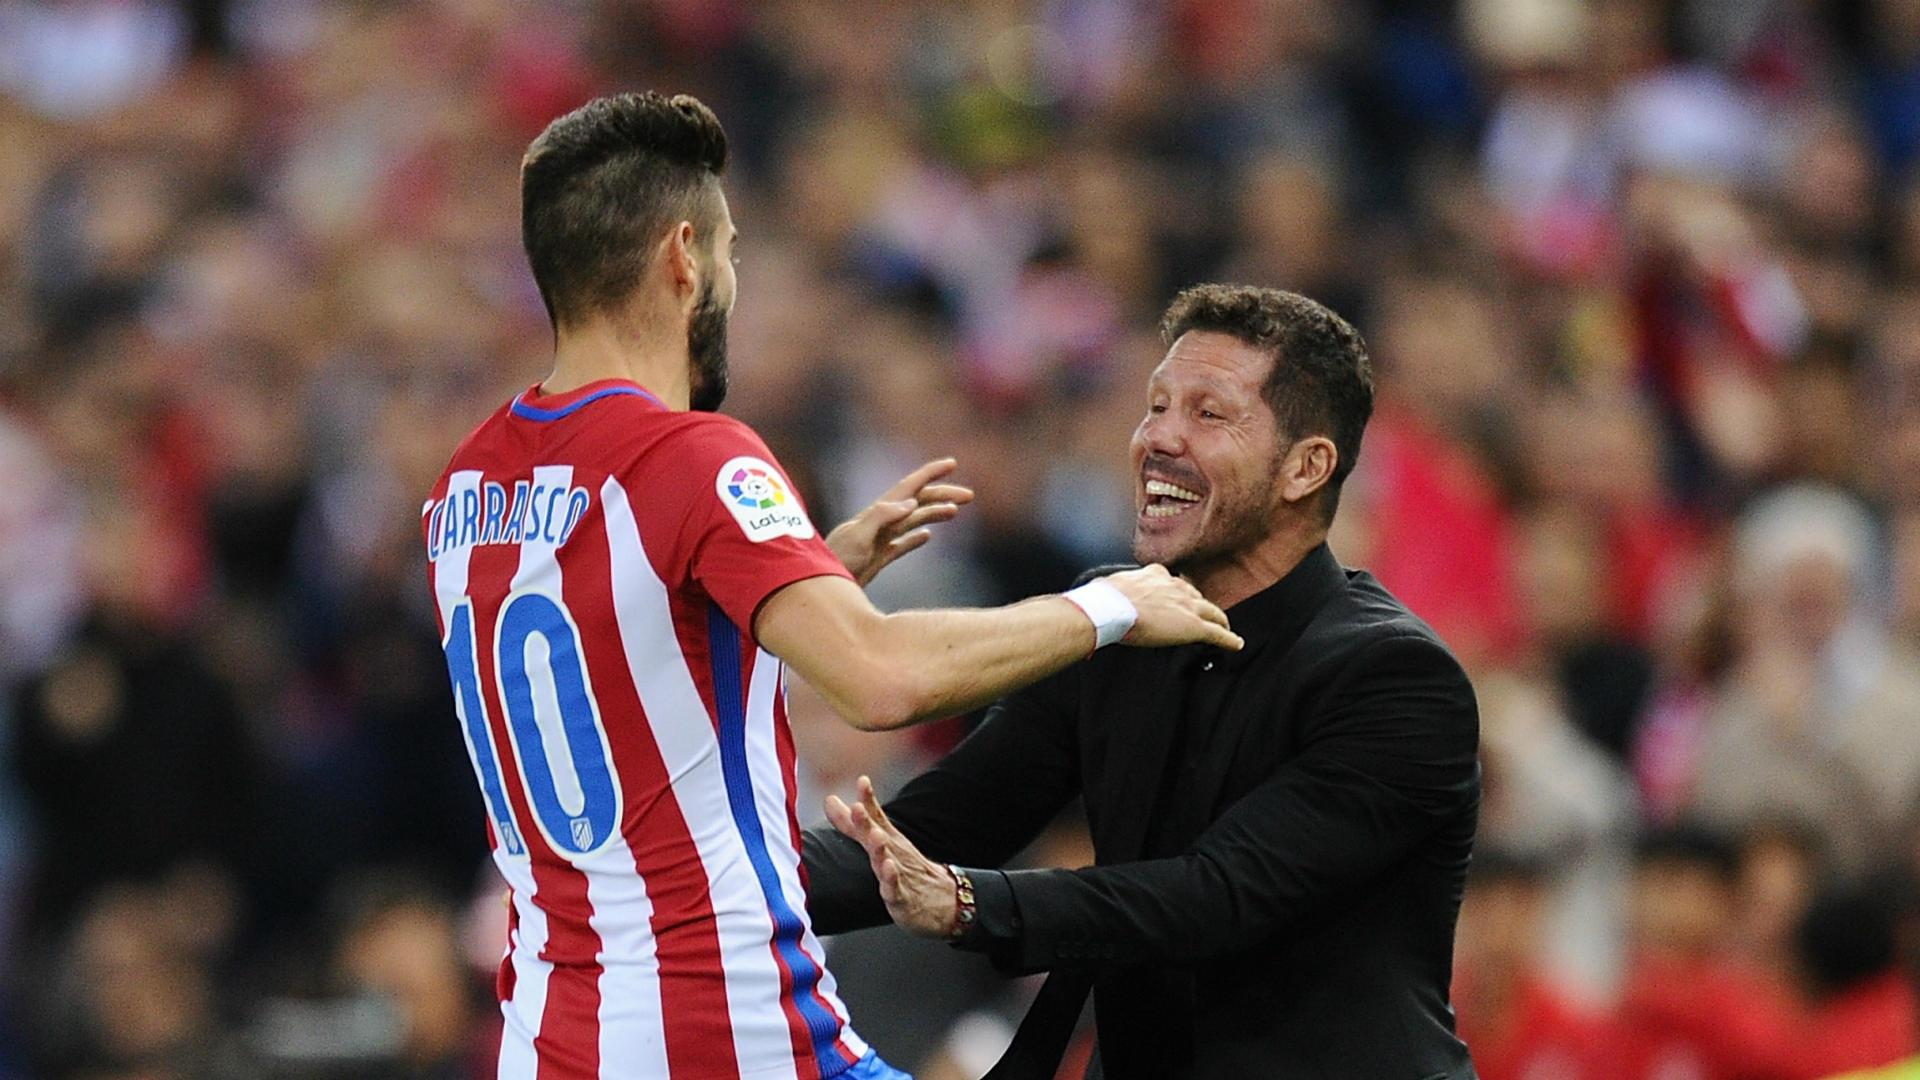 Atletico Madrid duo Yannick Carrasco and Nico Gaitan join Dalian Yifang